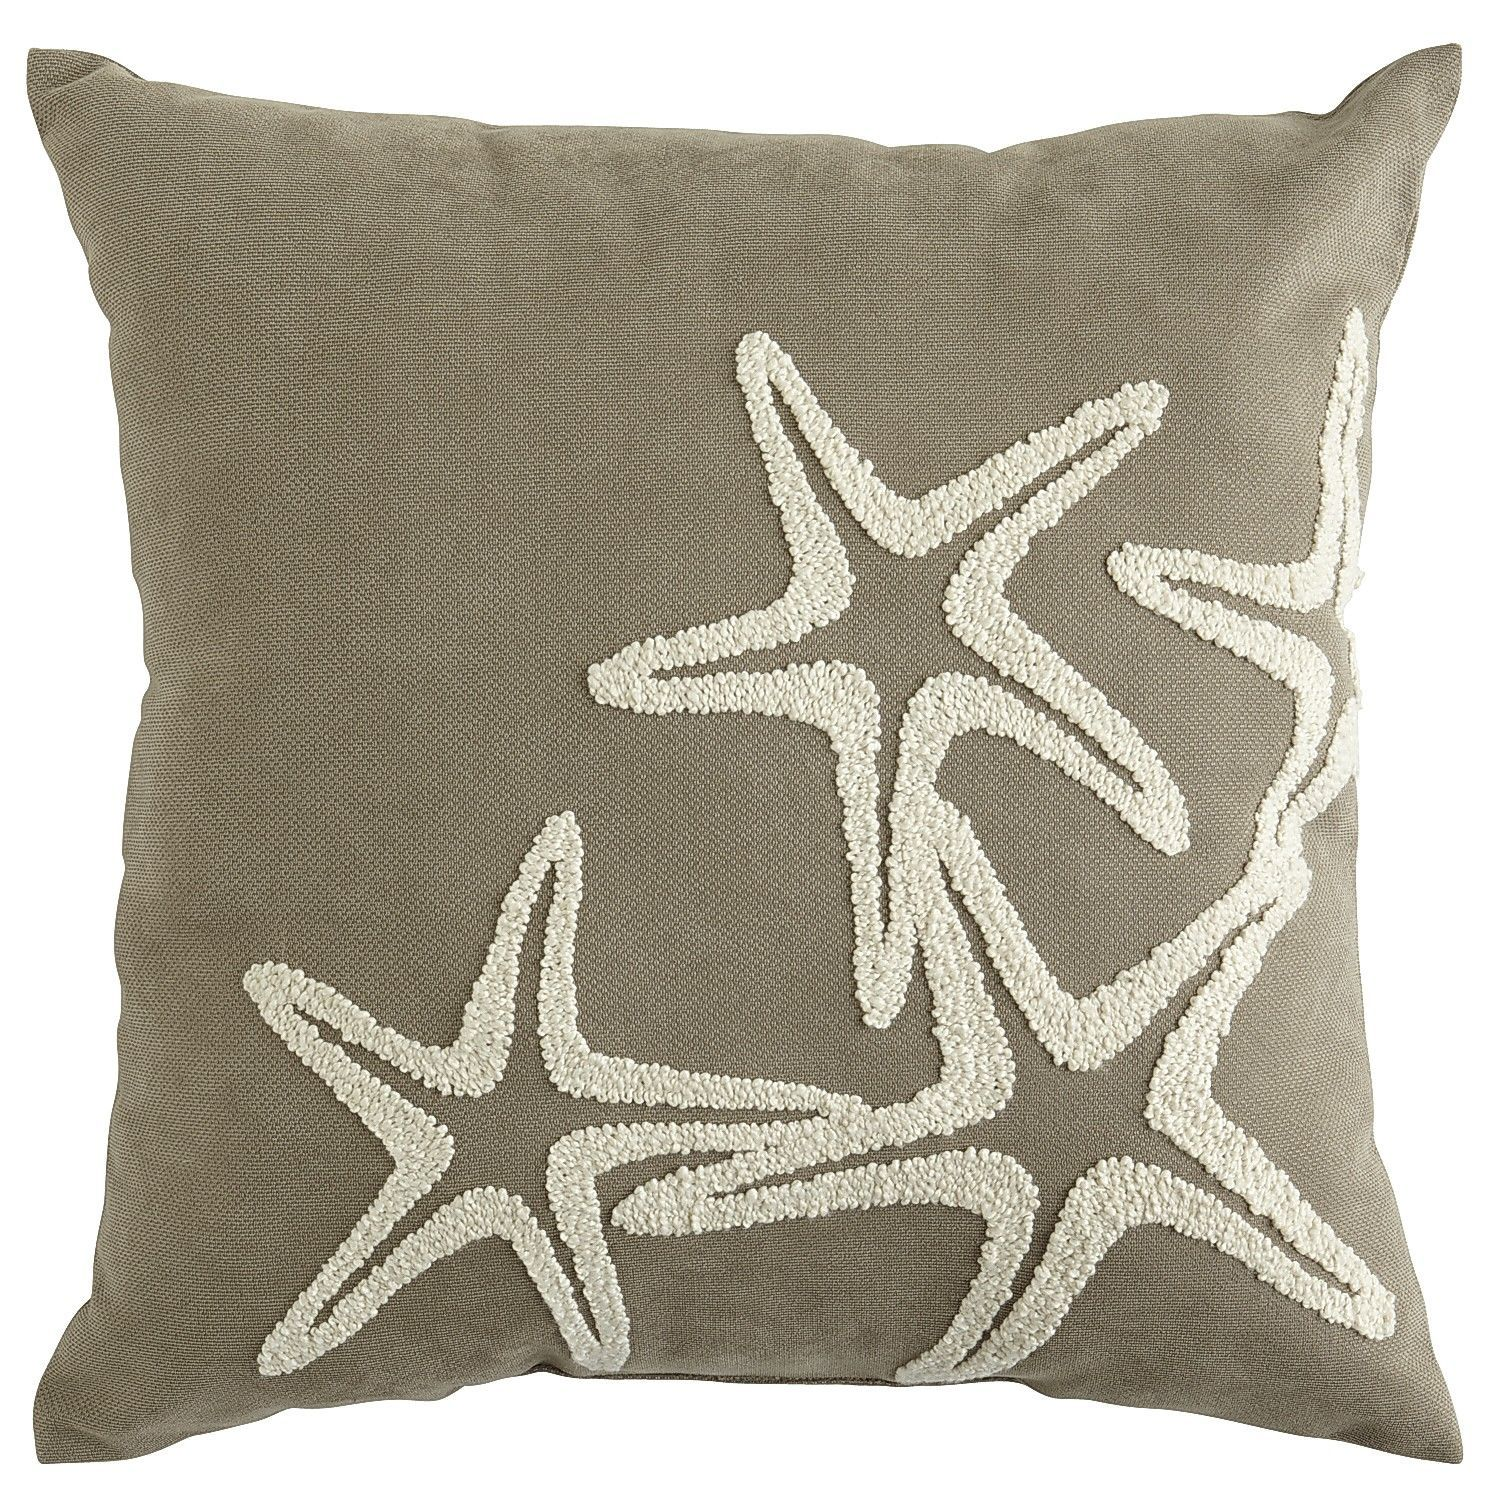 Embroidered Starfish Pillow Pier 1 Imports Might Match Our Swing Cover